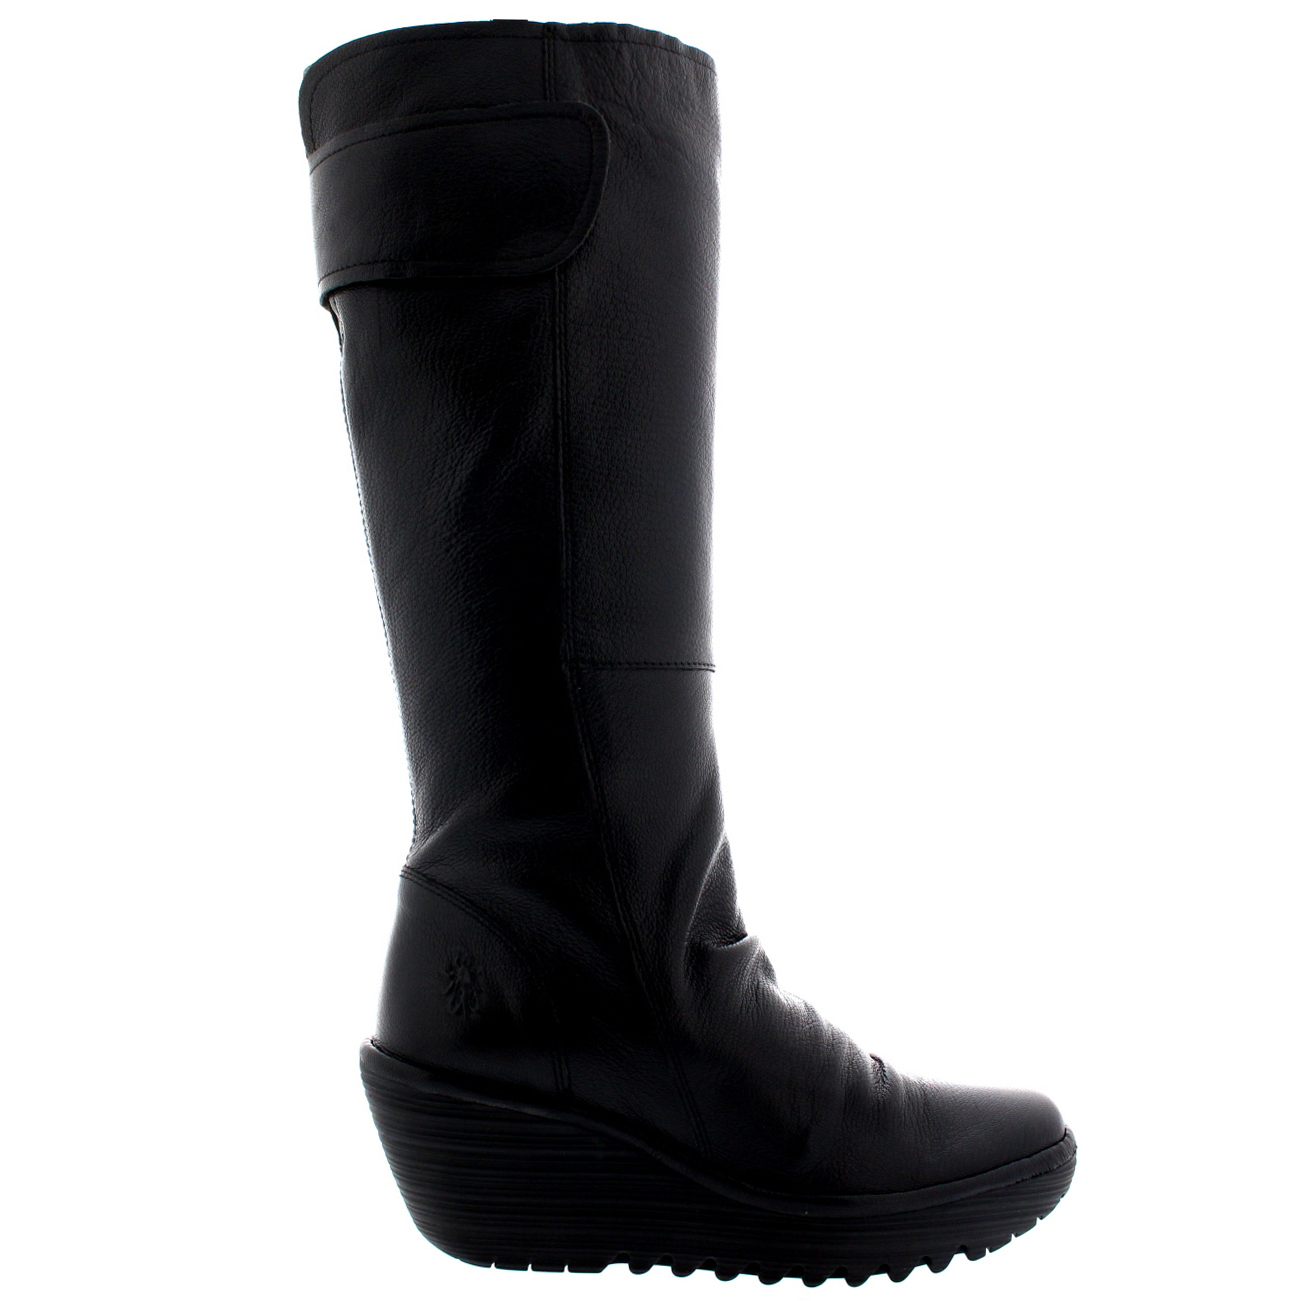 Get the look with our range of knee high boots in various styles from smart riding boots to knee high suede boots. Next day delivery available. Office Karaboo Leather Slouch Block Knee Boots Black Leather £ You can now pay in Euros & Dollars at disborunmaba.ga Please select the currency you wish to shop in.